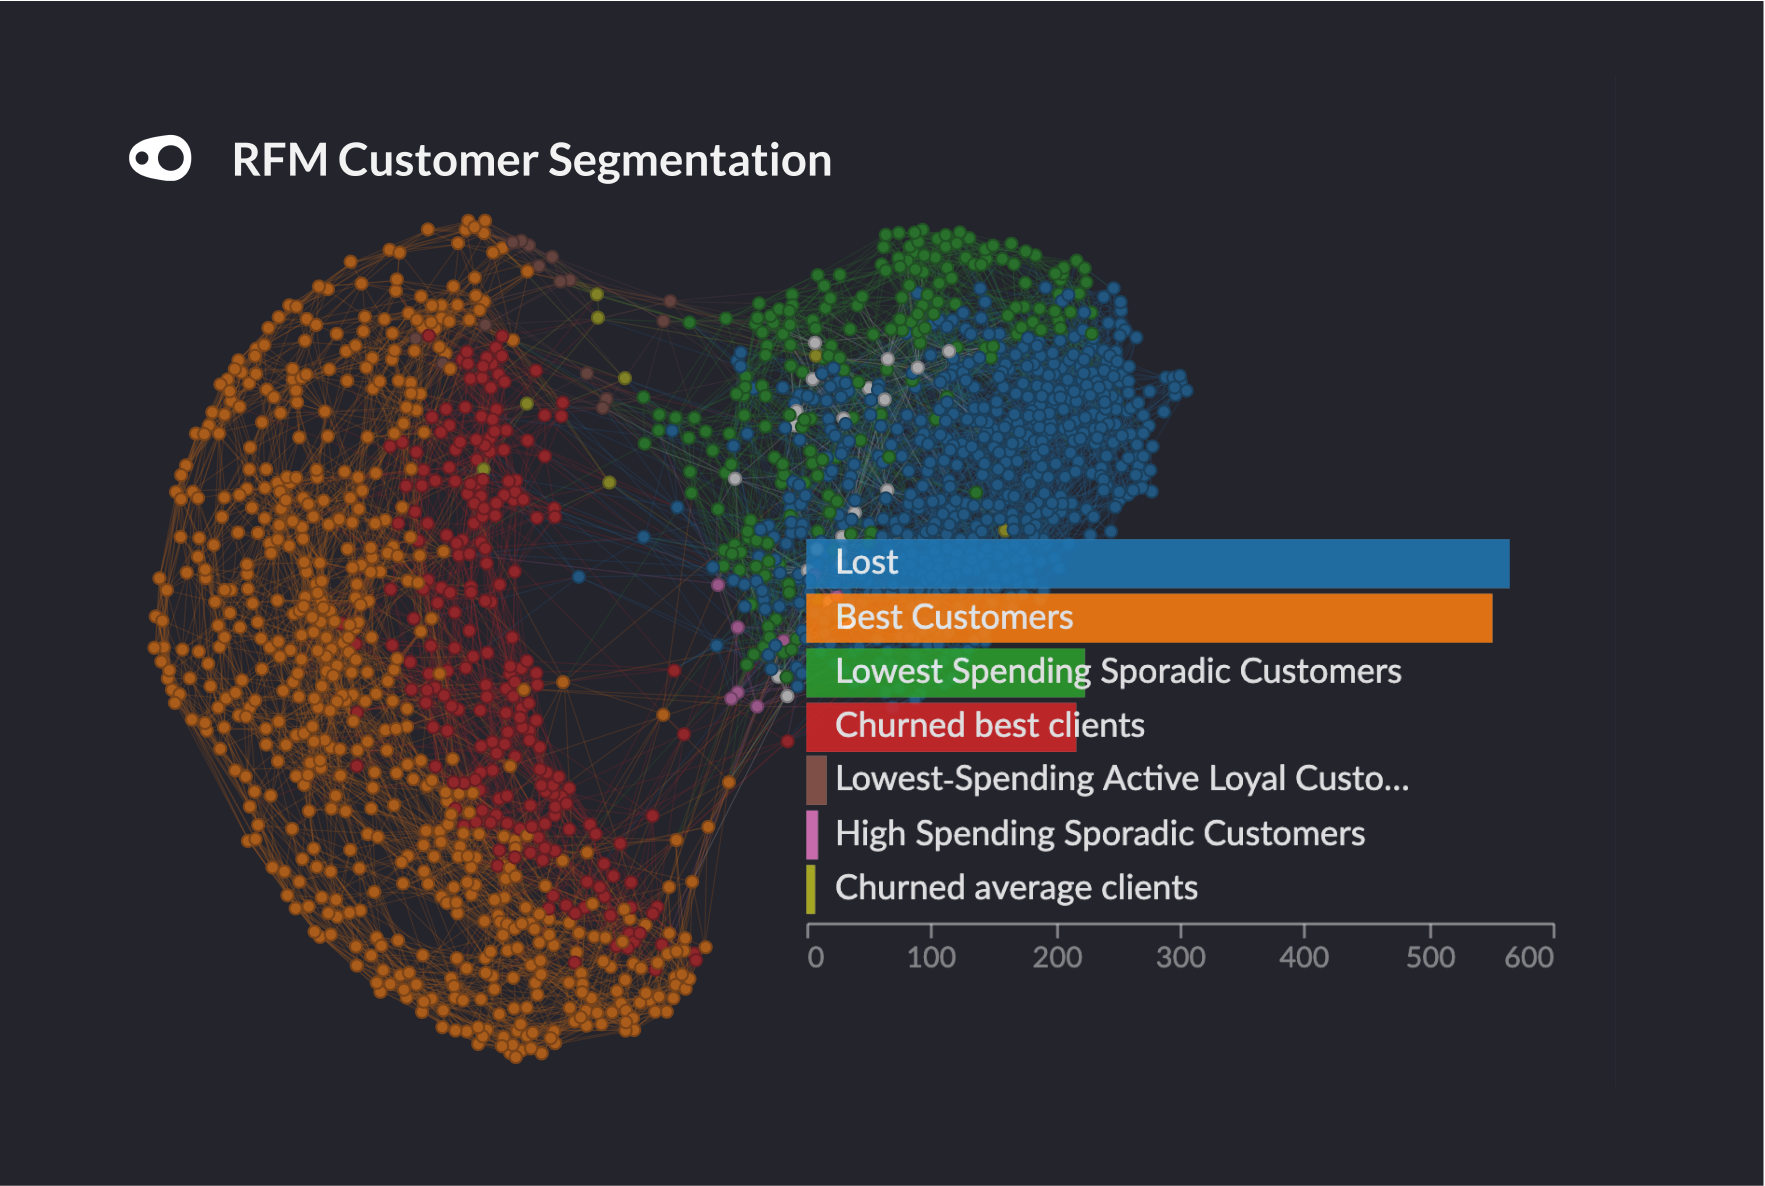 Drafting in a dataset containing information about purchases made over 4 years by 1590 customers on an online superstore, our team wanted to demonstrate the usefulness of RFM analysis.